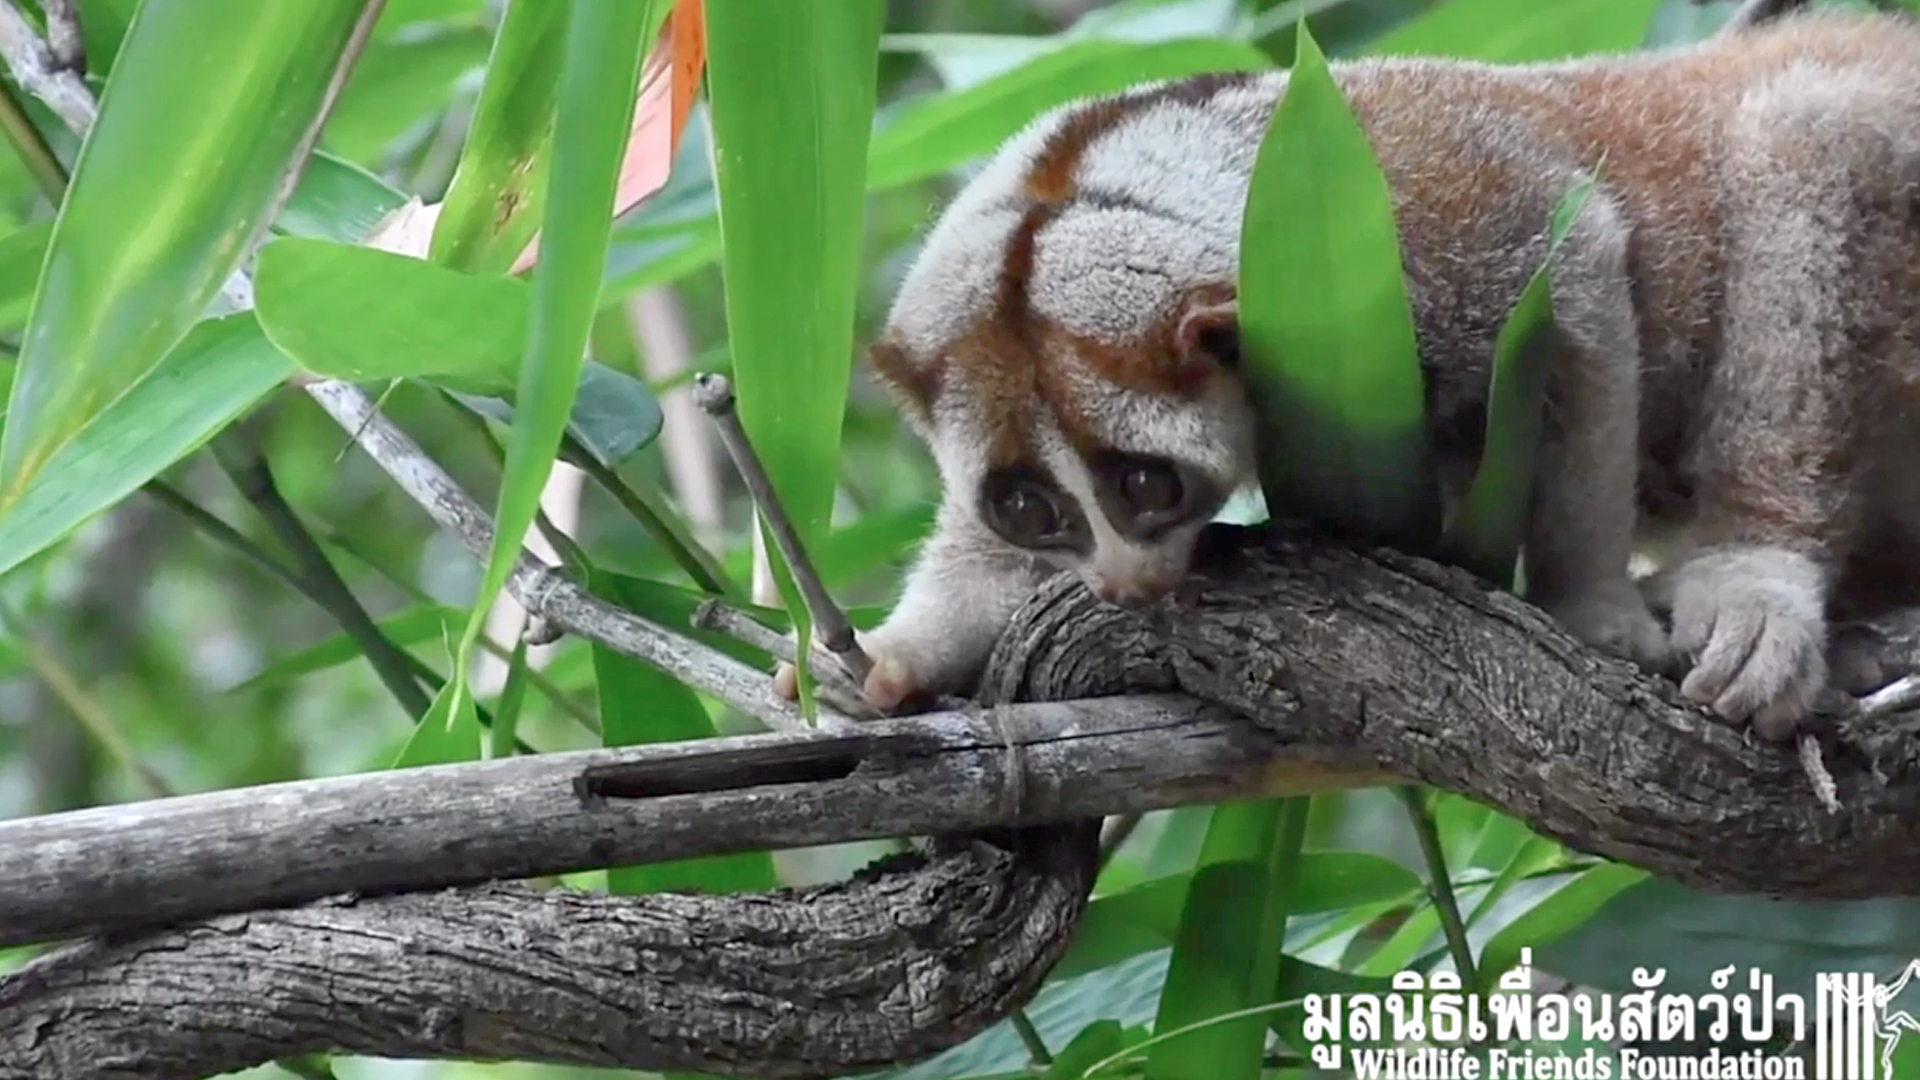 VIDEO: Slowly Does It: Slow Loris Returns To The Wild After Treatment For Power Line Shock